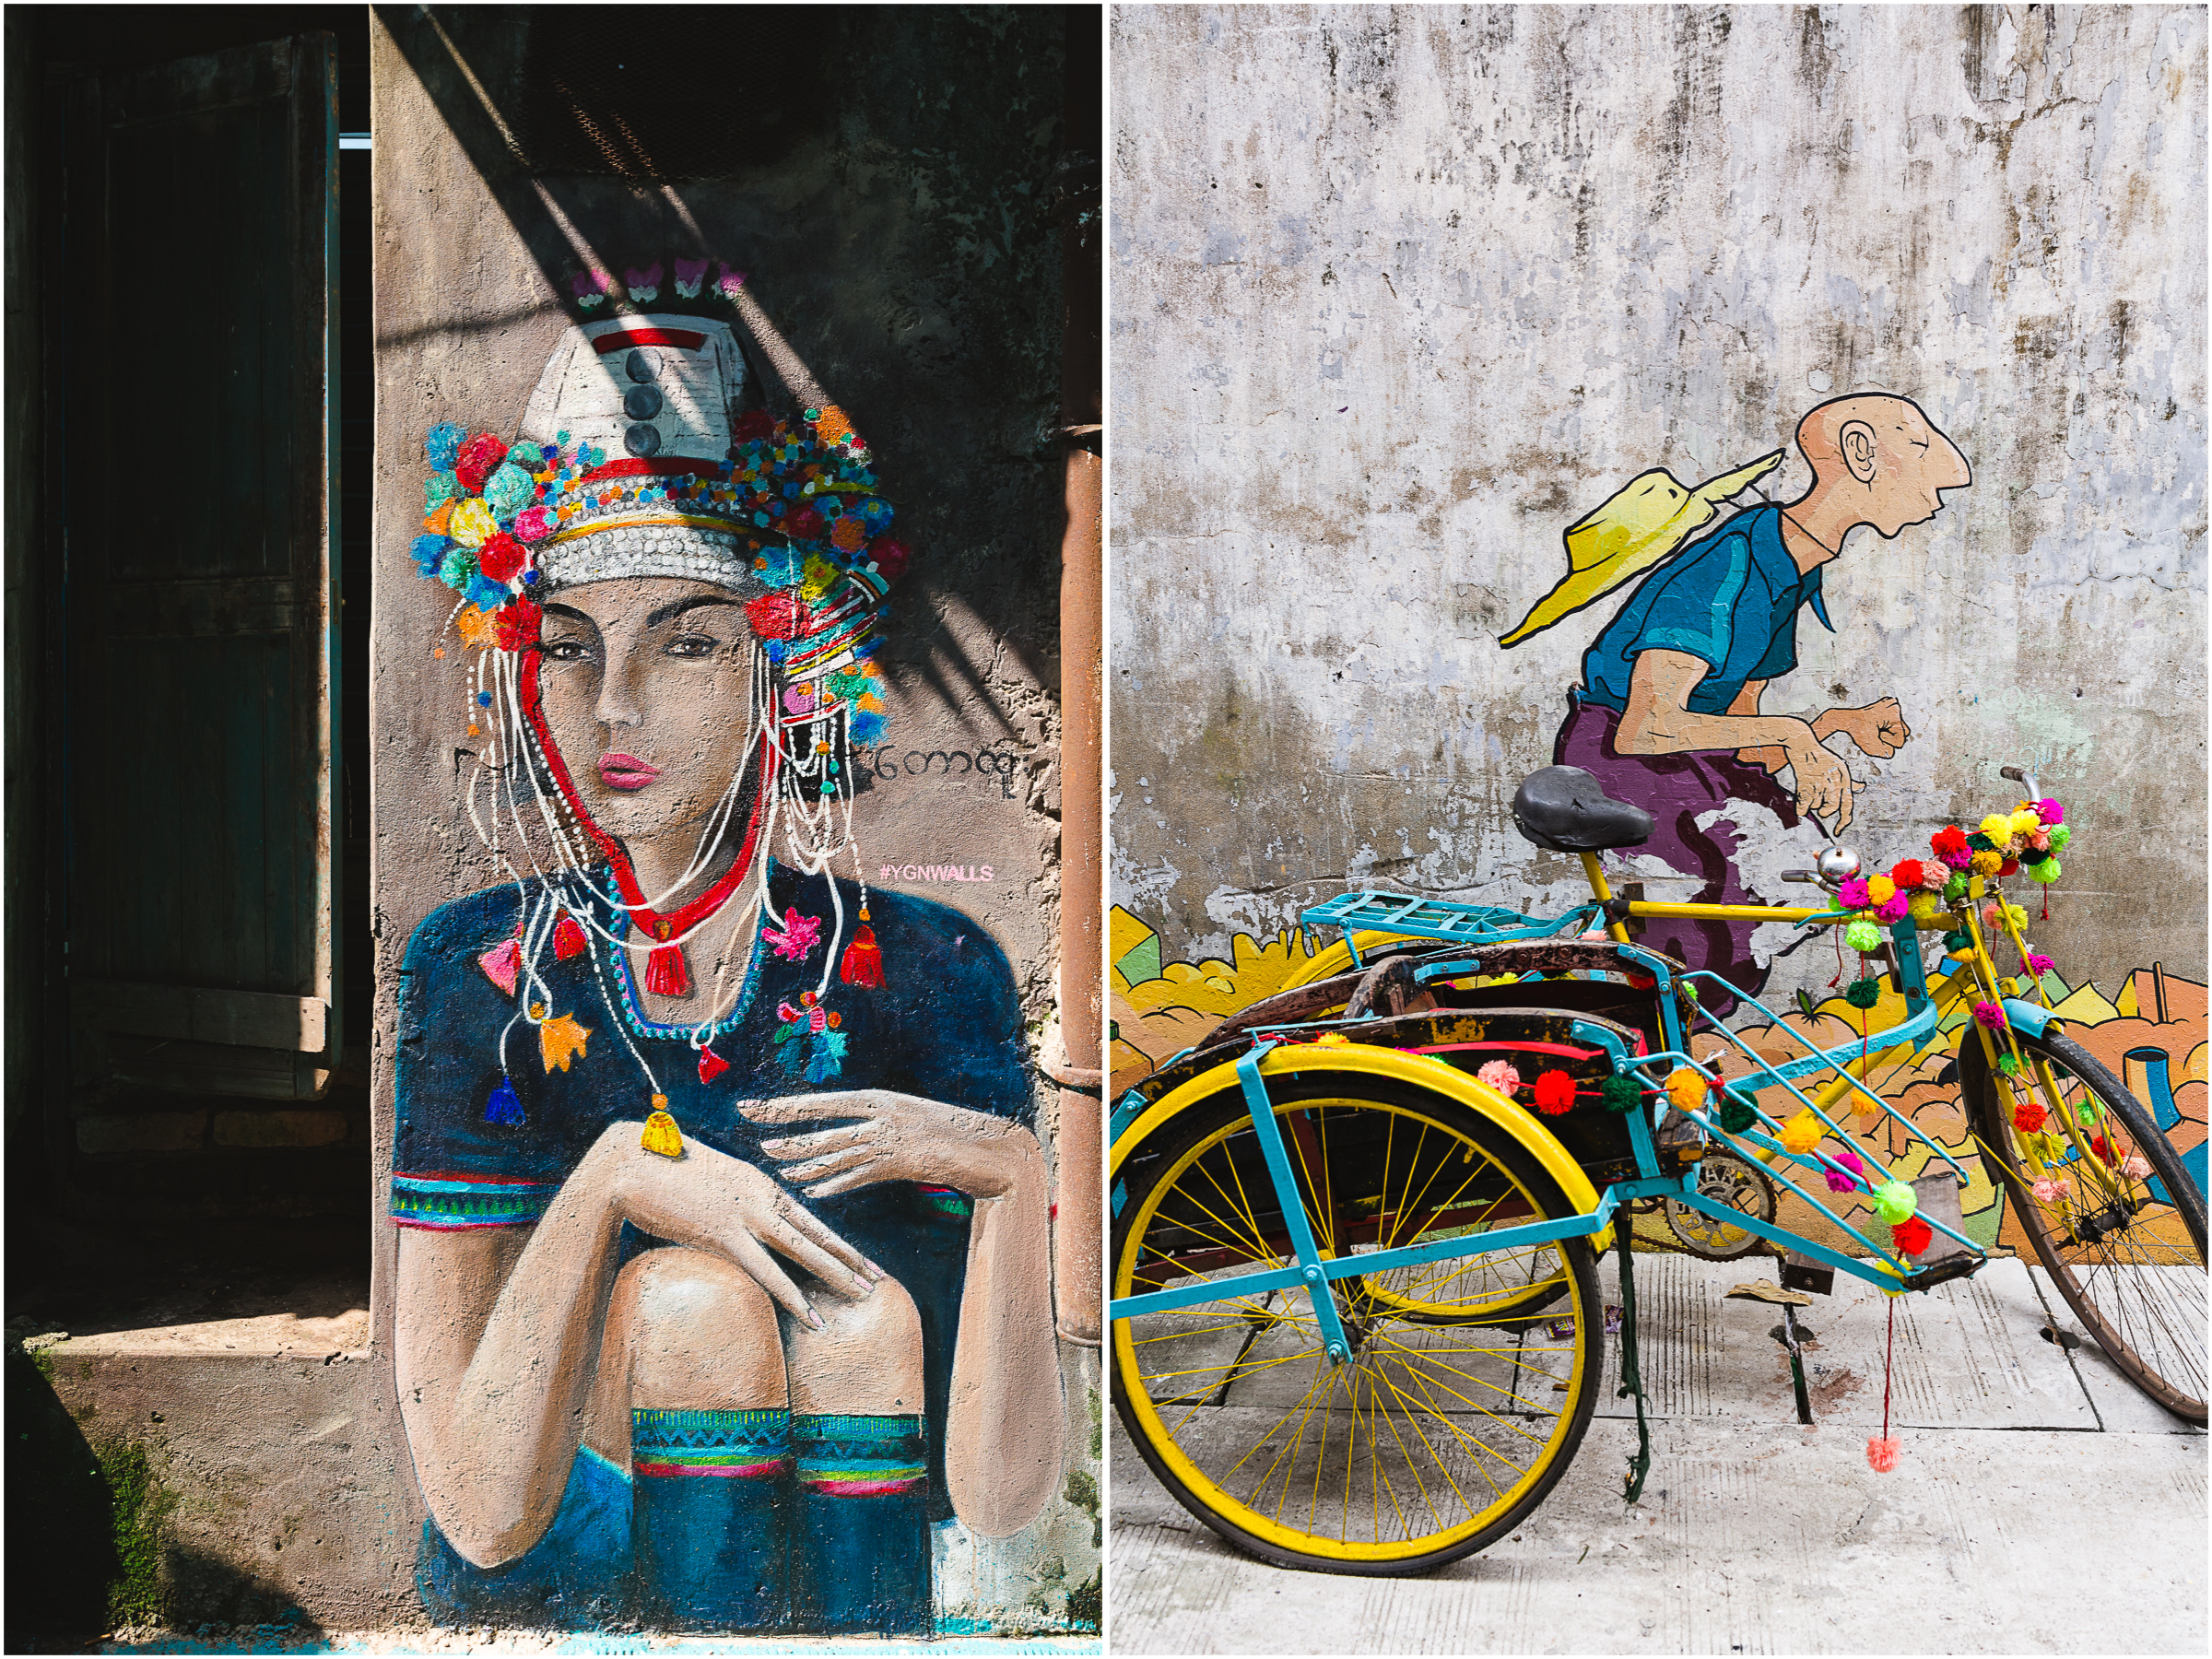 Not a typical day in my life, but  Yangon  has some interesting sites to see - when I can sneak away from work!